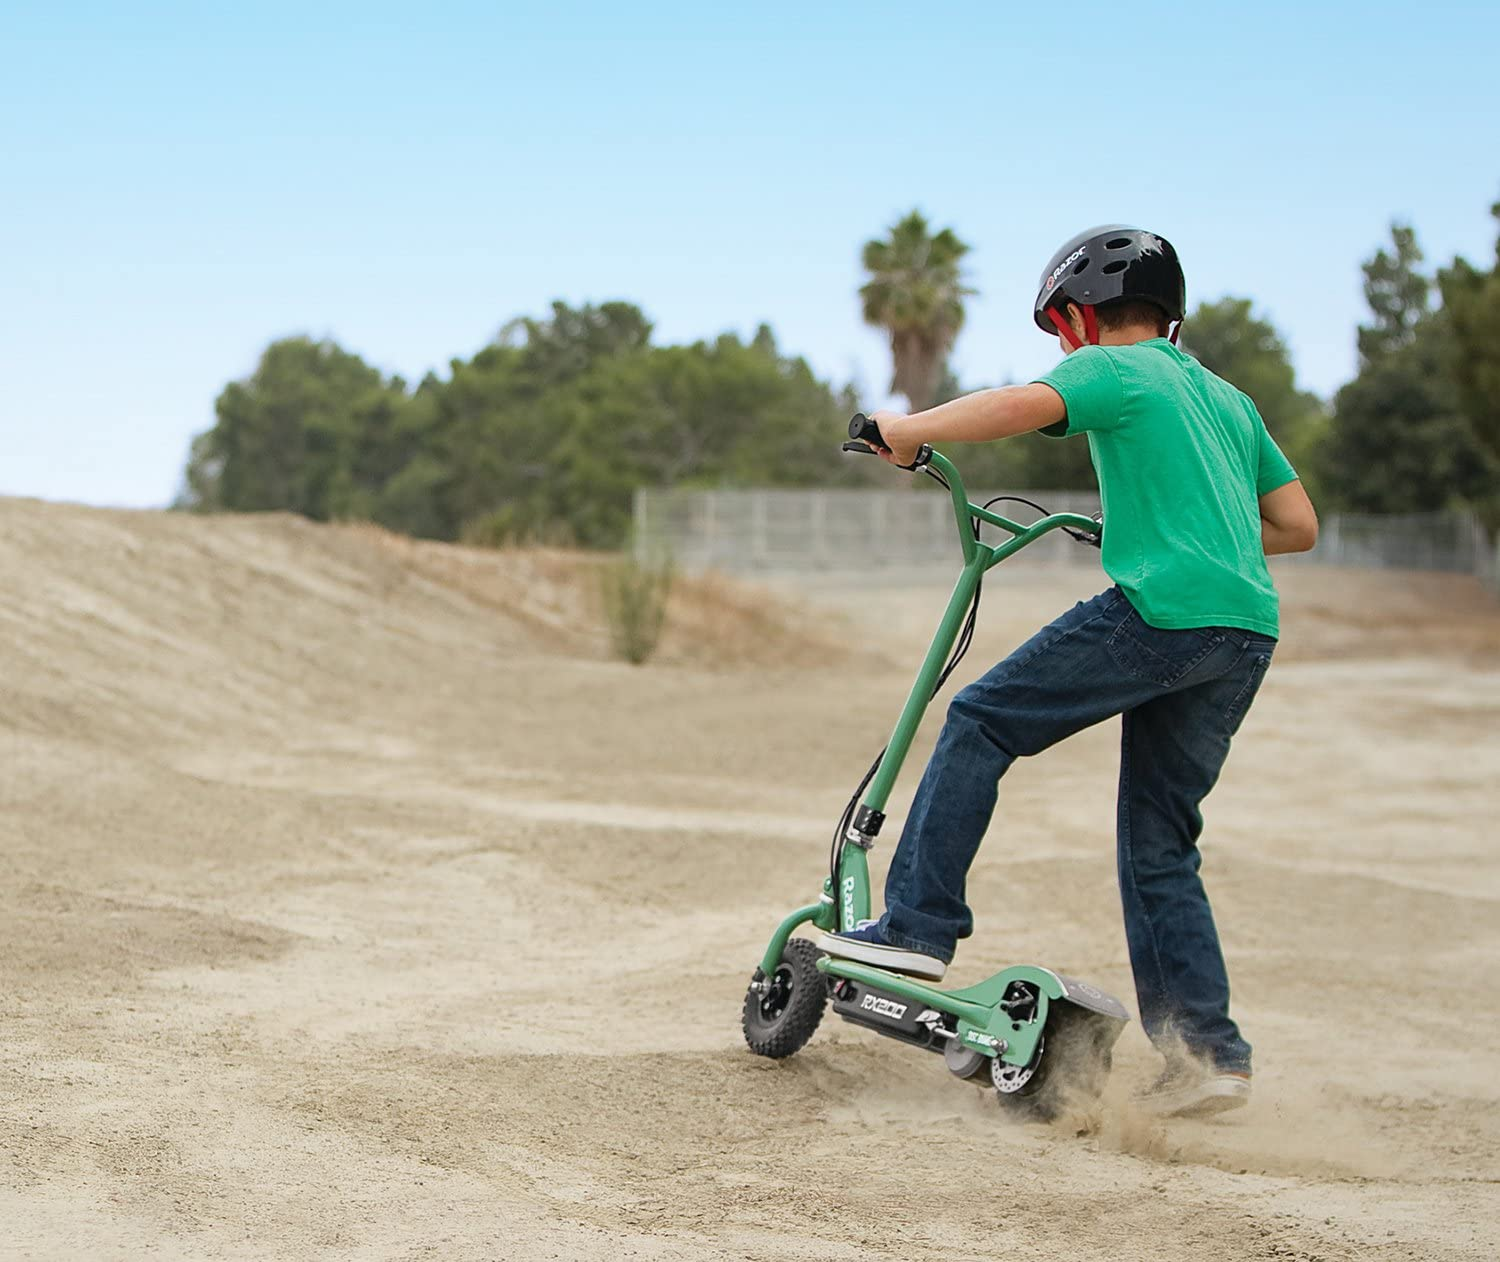 best off road electric scooter